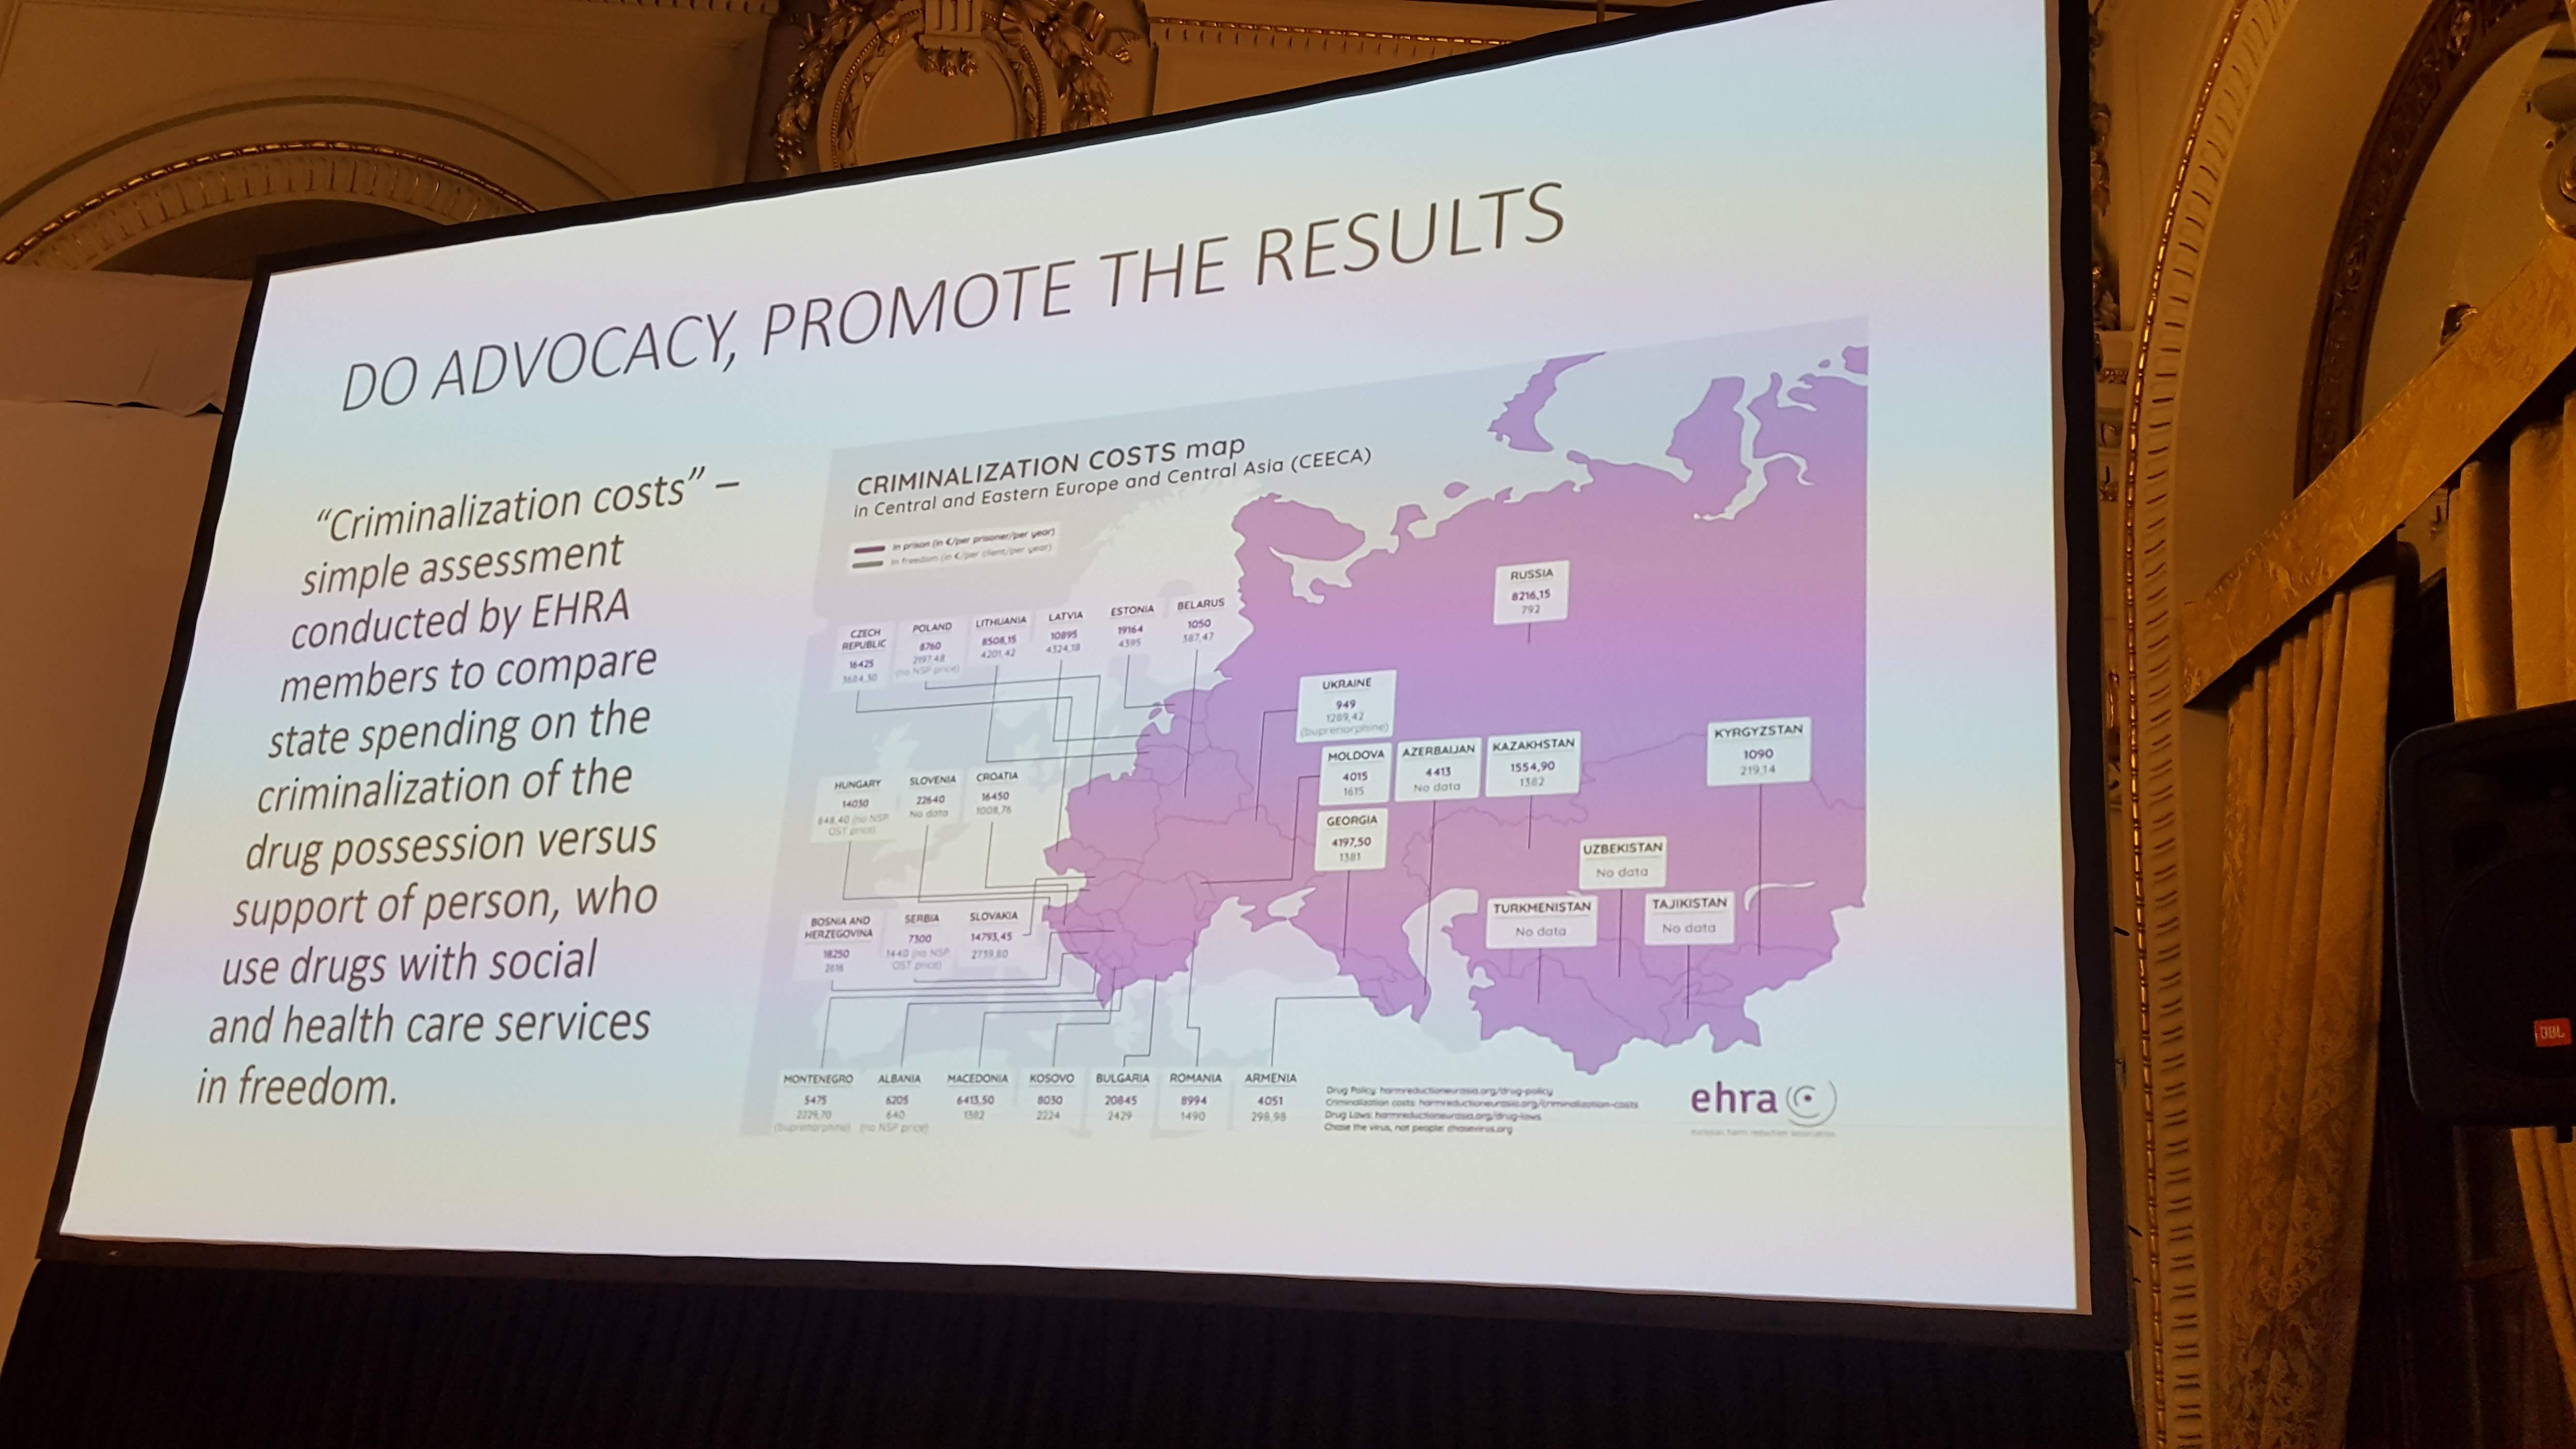 Criminalization Costs EHRA, HepHIV 2019